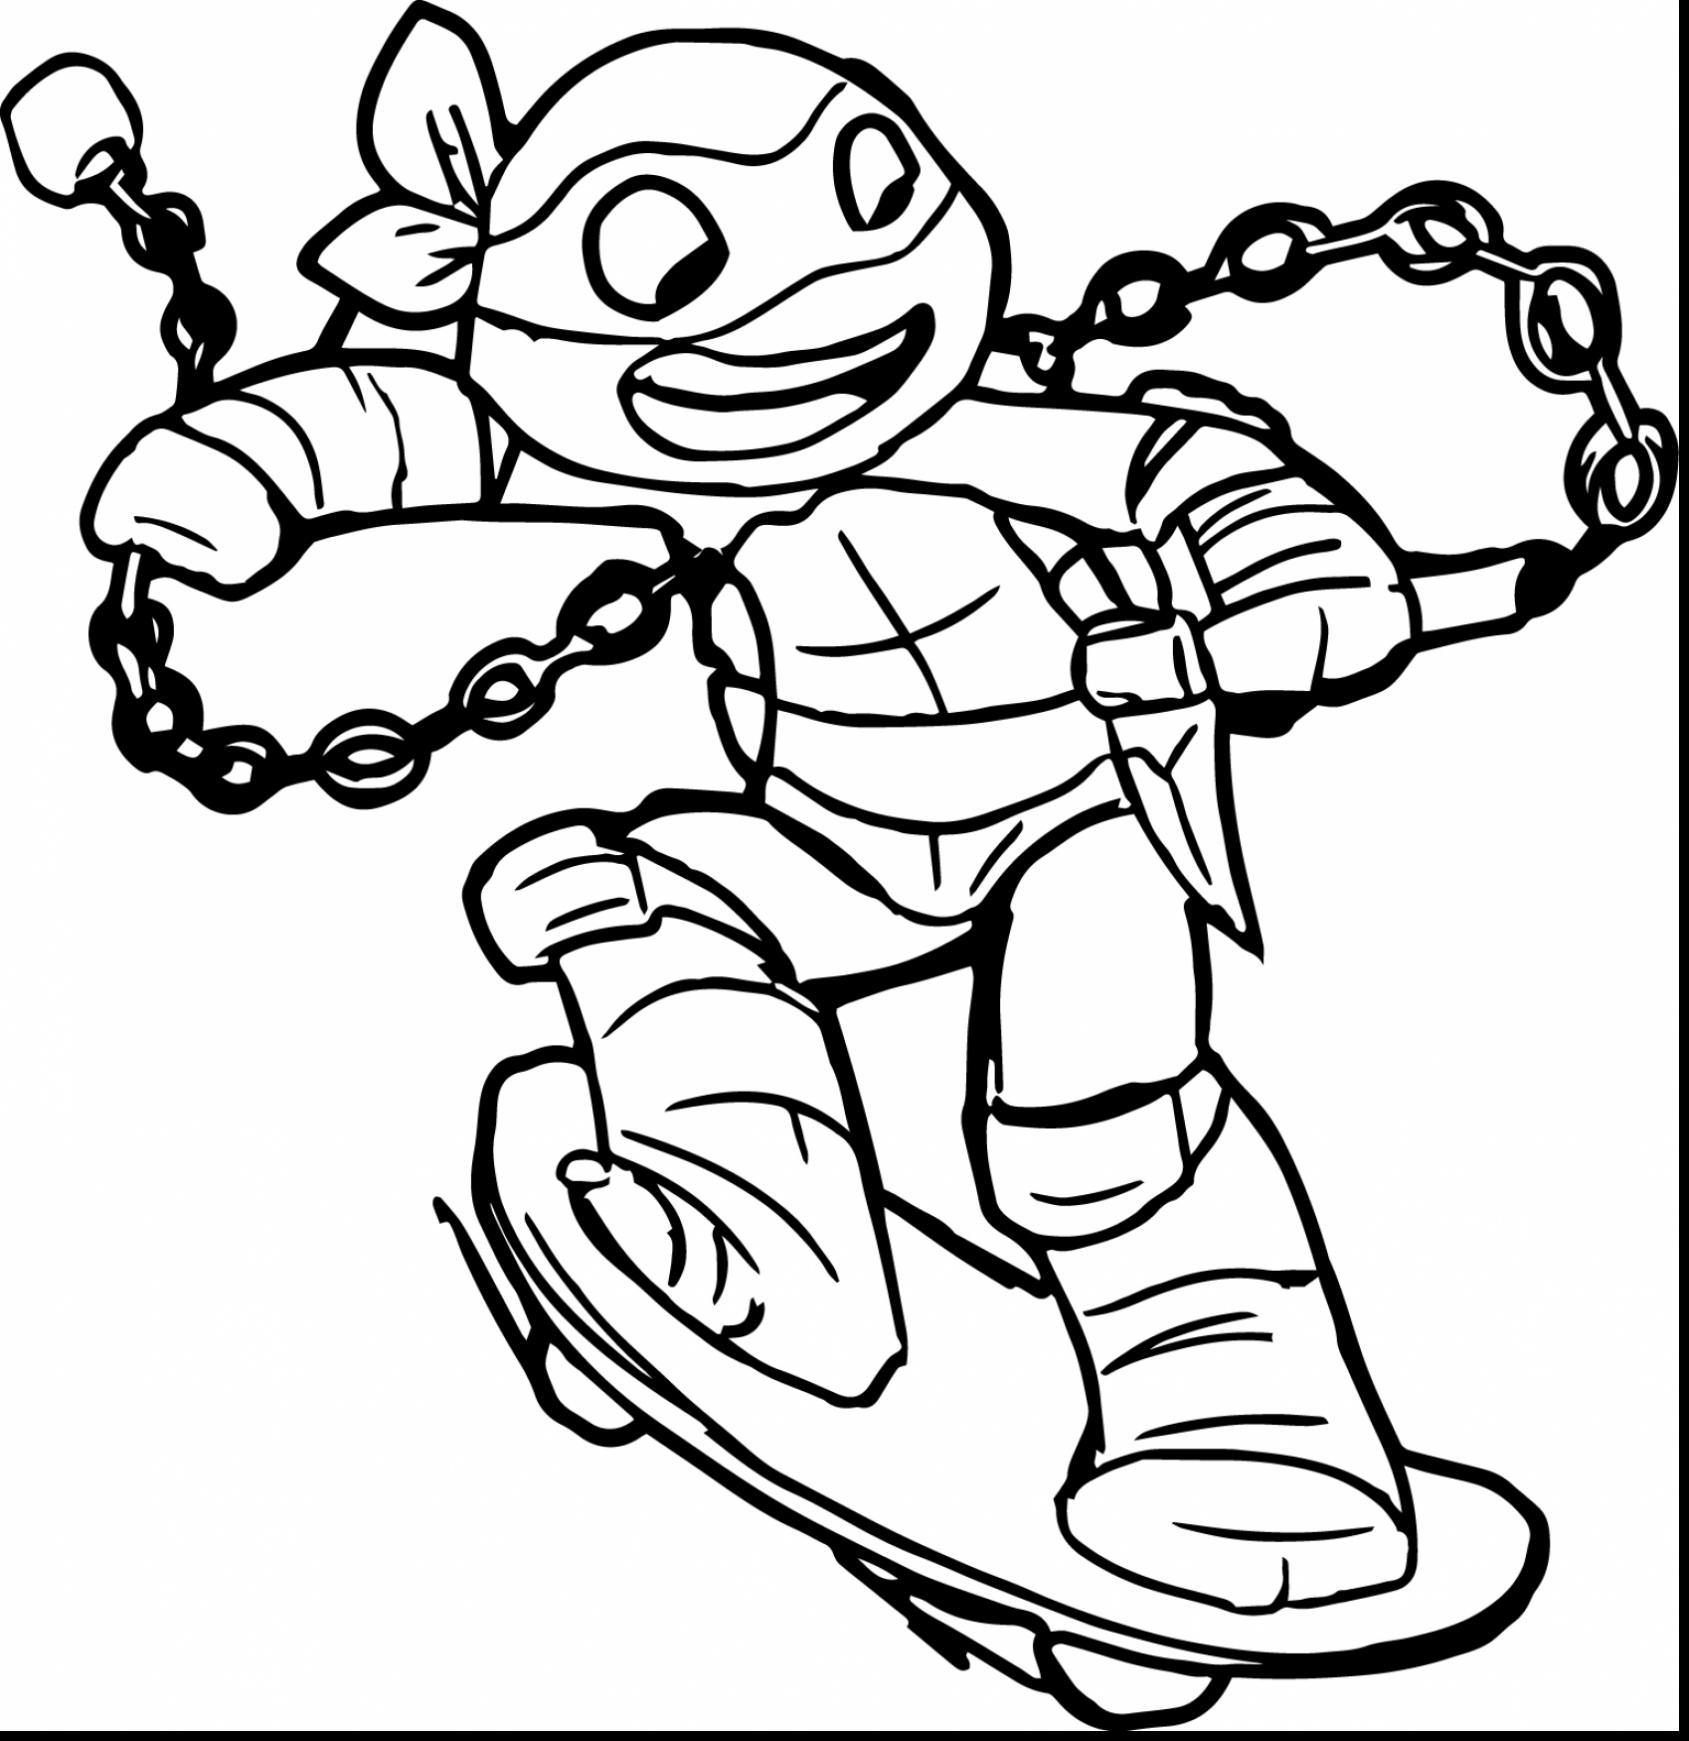 Pin By Blogger On 2020 Coloring Pages Turtle Coloring Pages